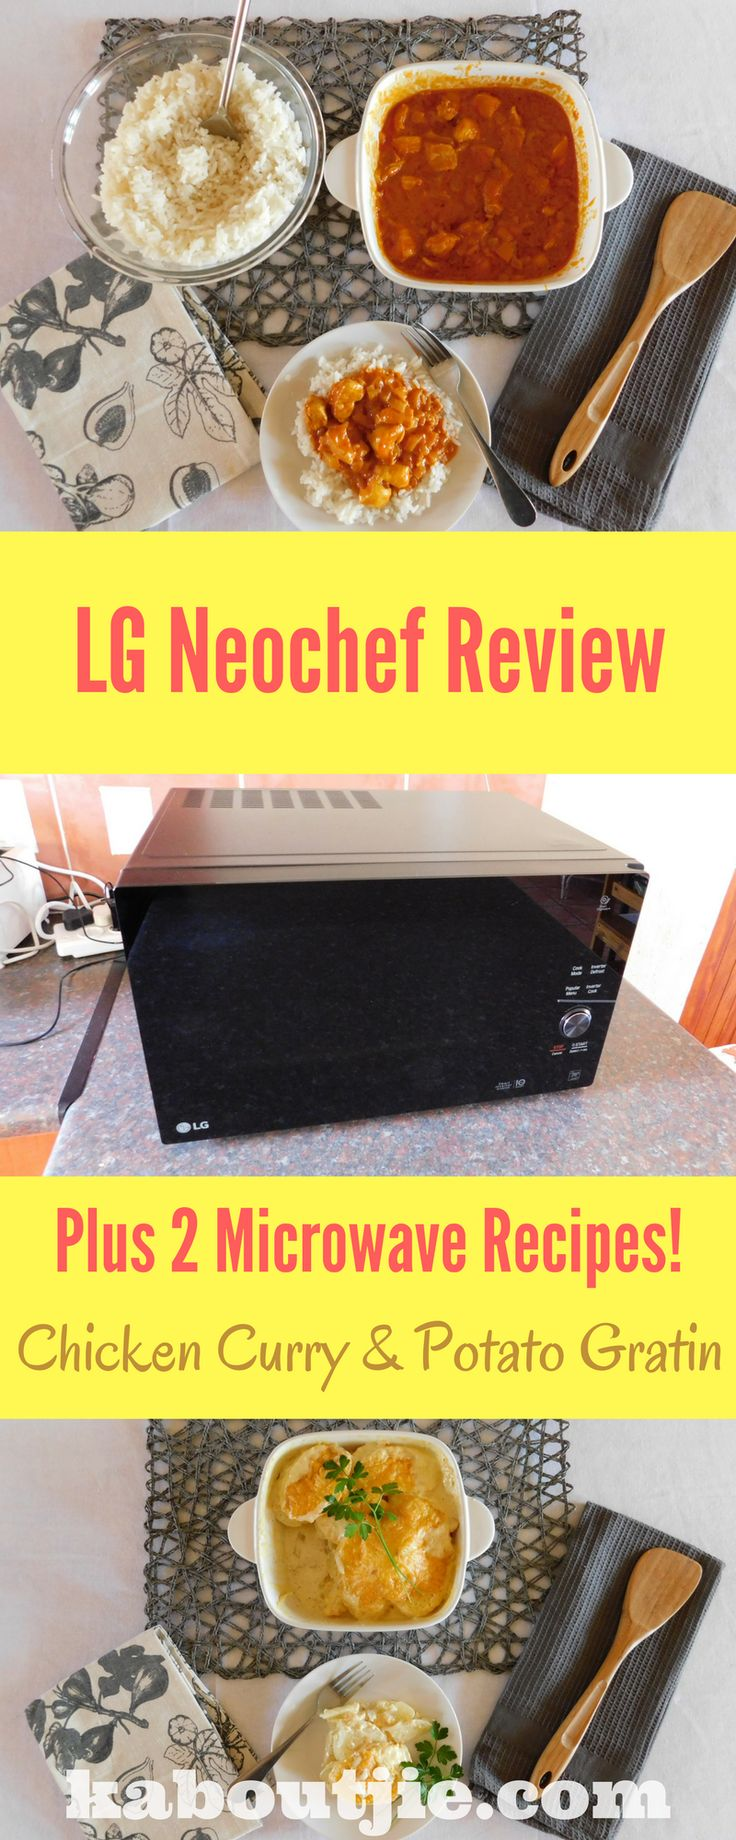 LG Neochef Microwave Review    The LG NeoChef microwave is simply amazing, check out my full LG Neochef Microwave Review to see what this microwave is capable of!    #LGNeoChef  #sponsored   #LGSouthAfrica  #LGHomeAppliances